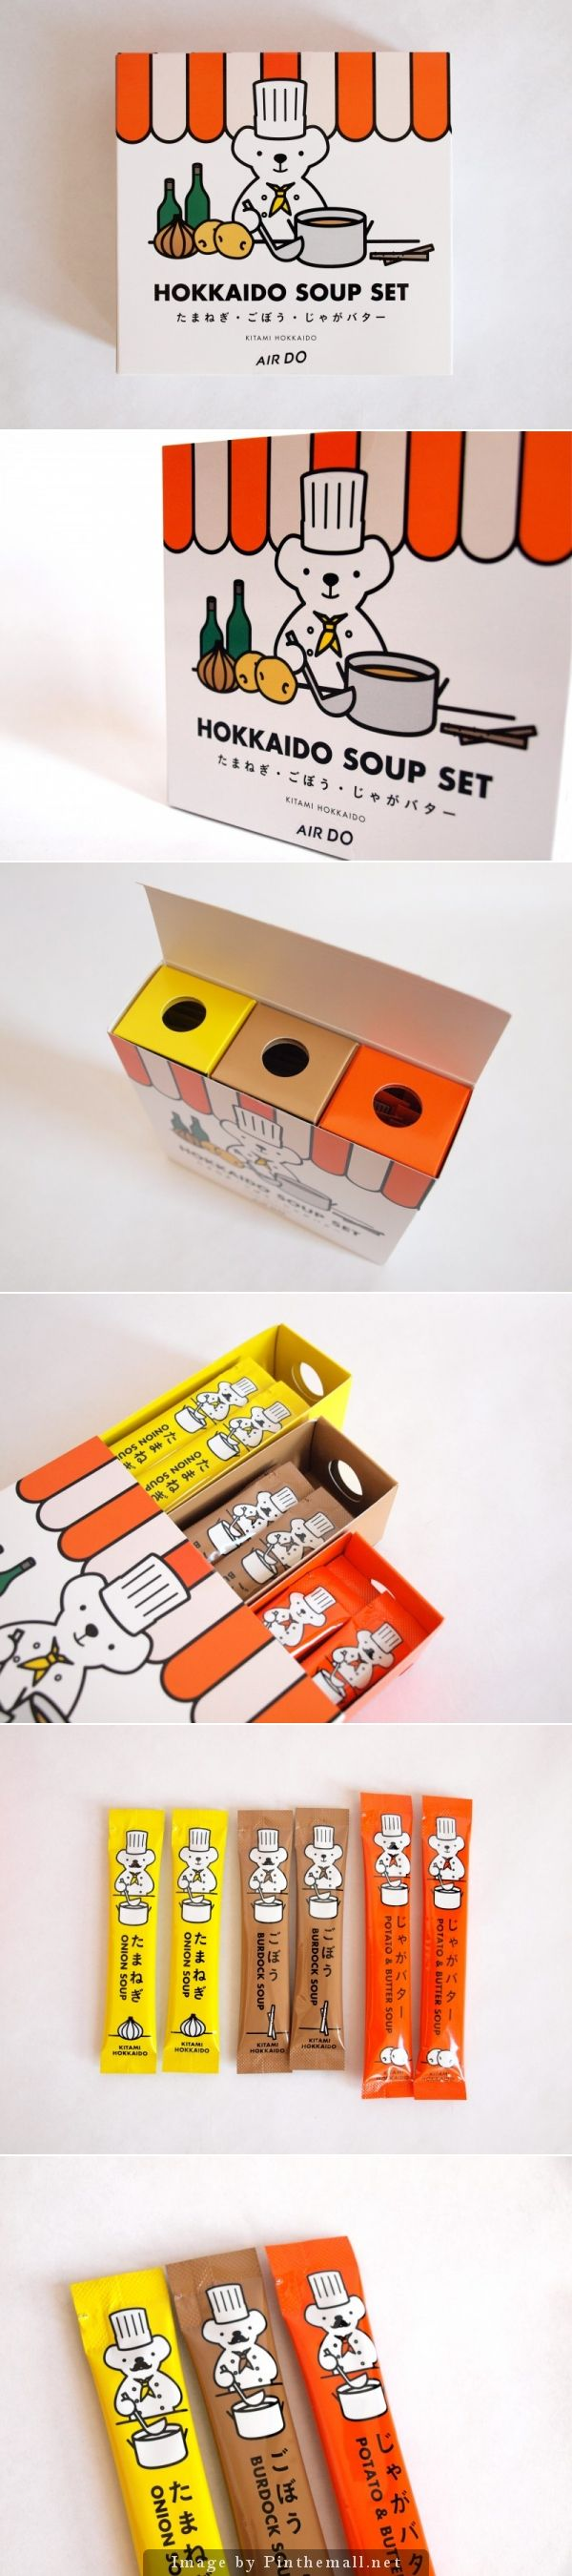 Just the cutest #soup #packaging PD